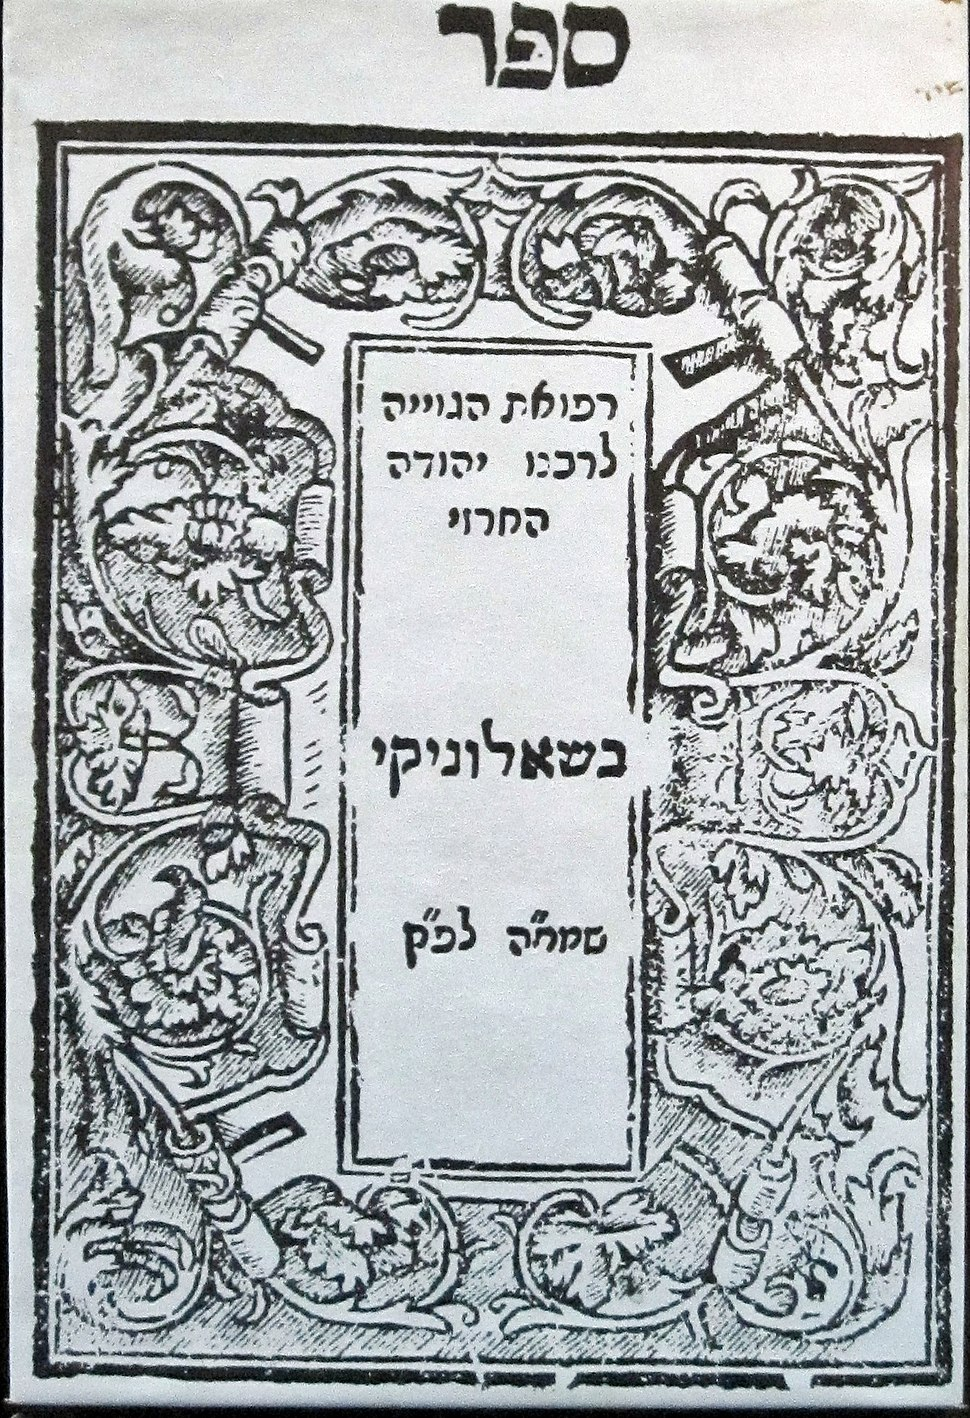 Sefer Refu%27 at ha Geviyah, Judah Al Harizi